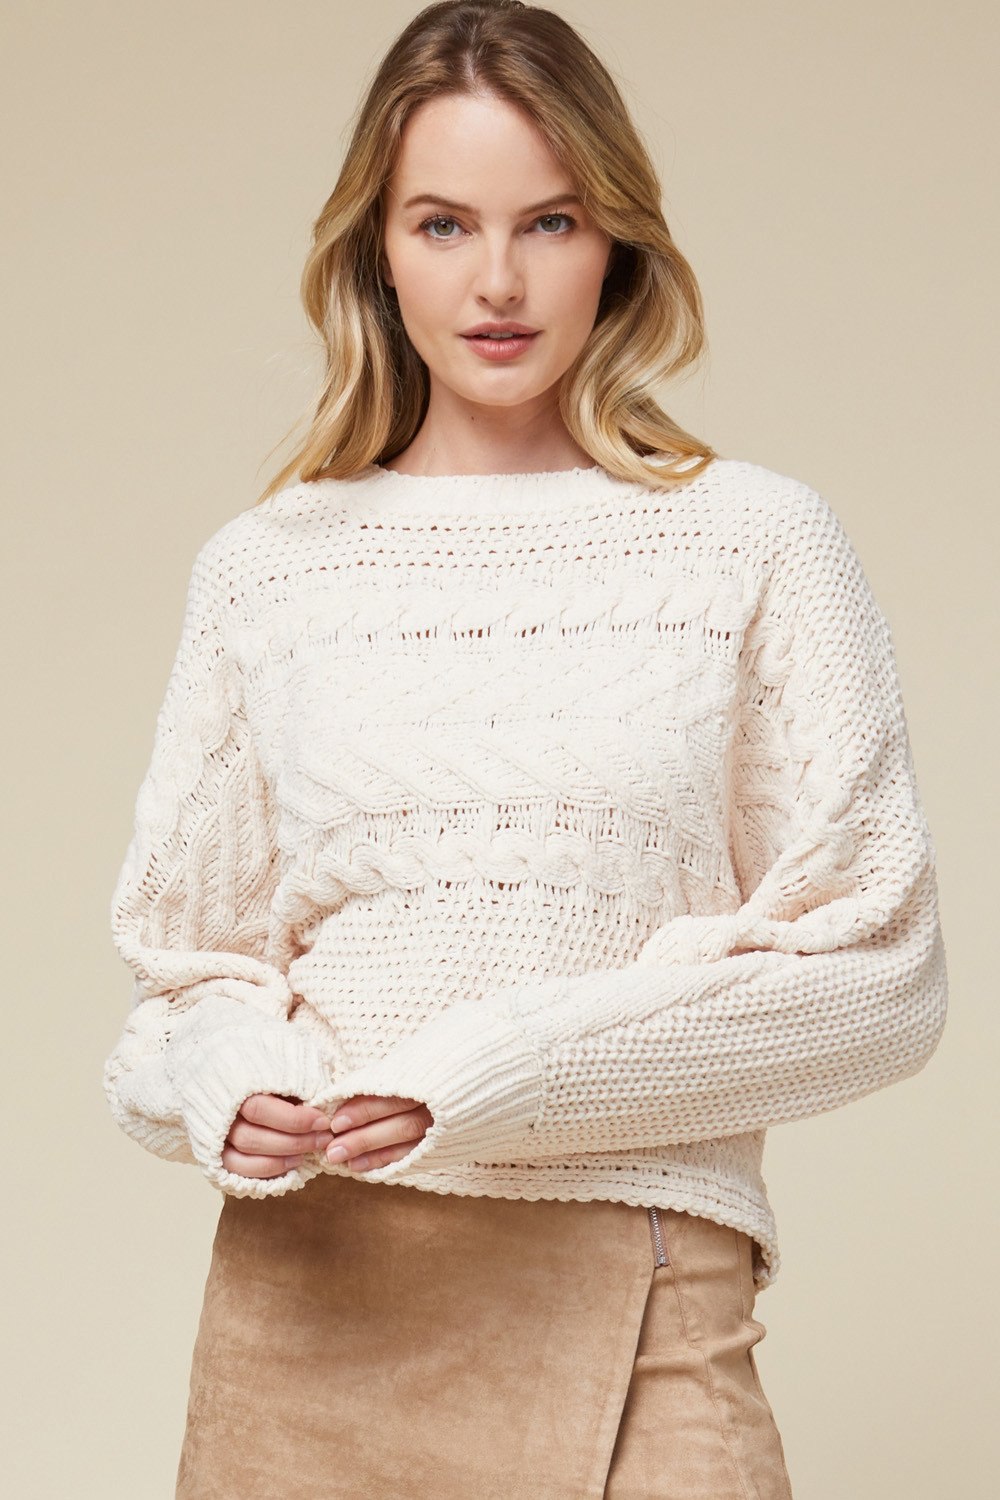 ENTRO INC Women's Sweater Chenille Knit Cropped Pullover Sweater || David's Clothing